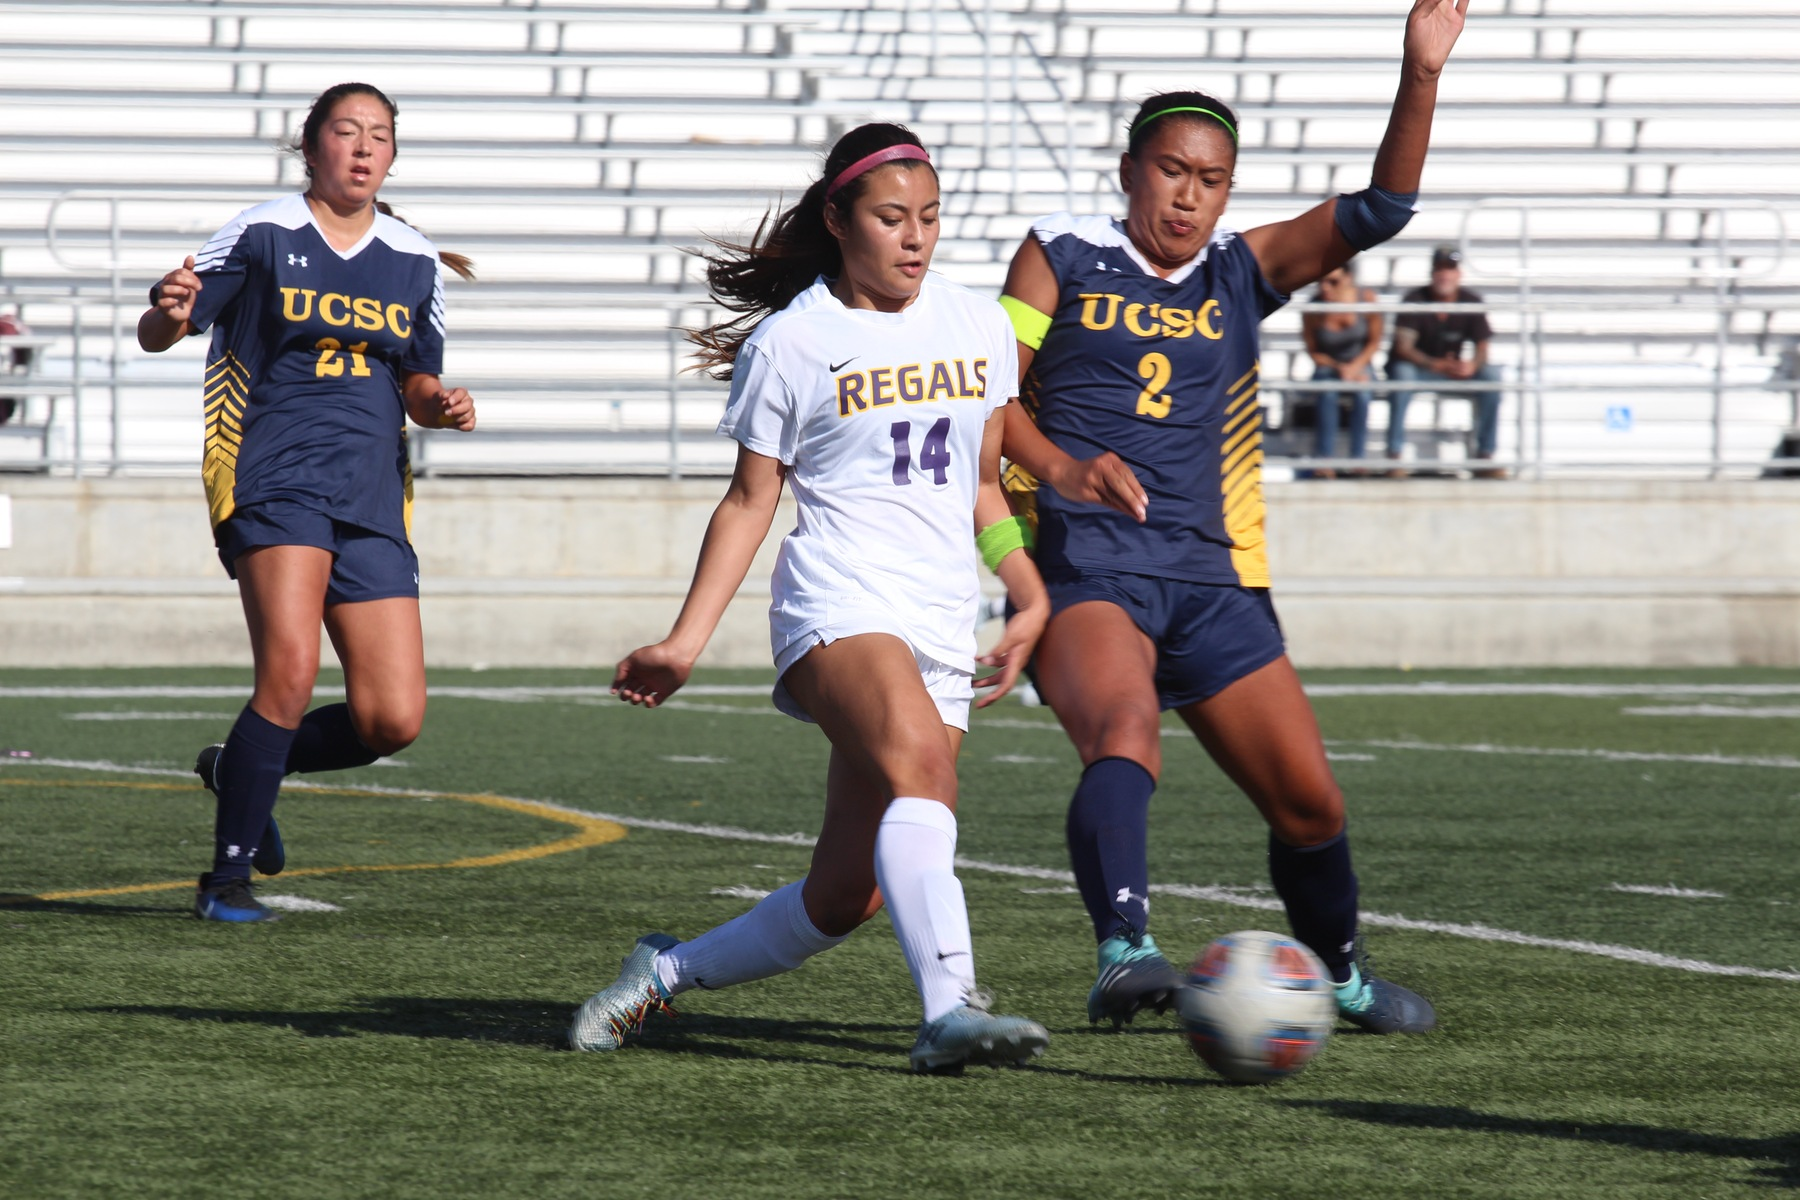 Regals Win Fourth Straight Game